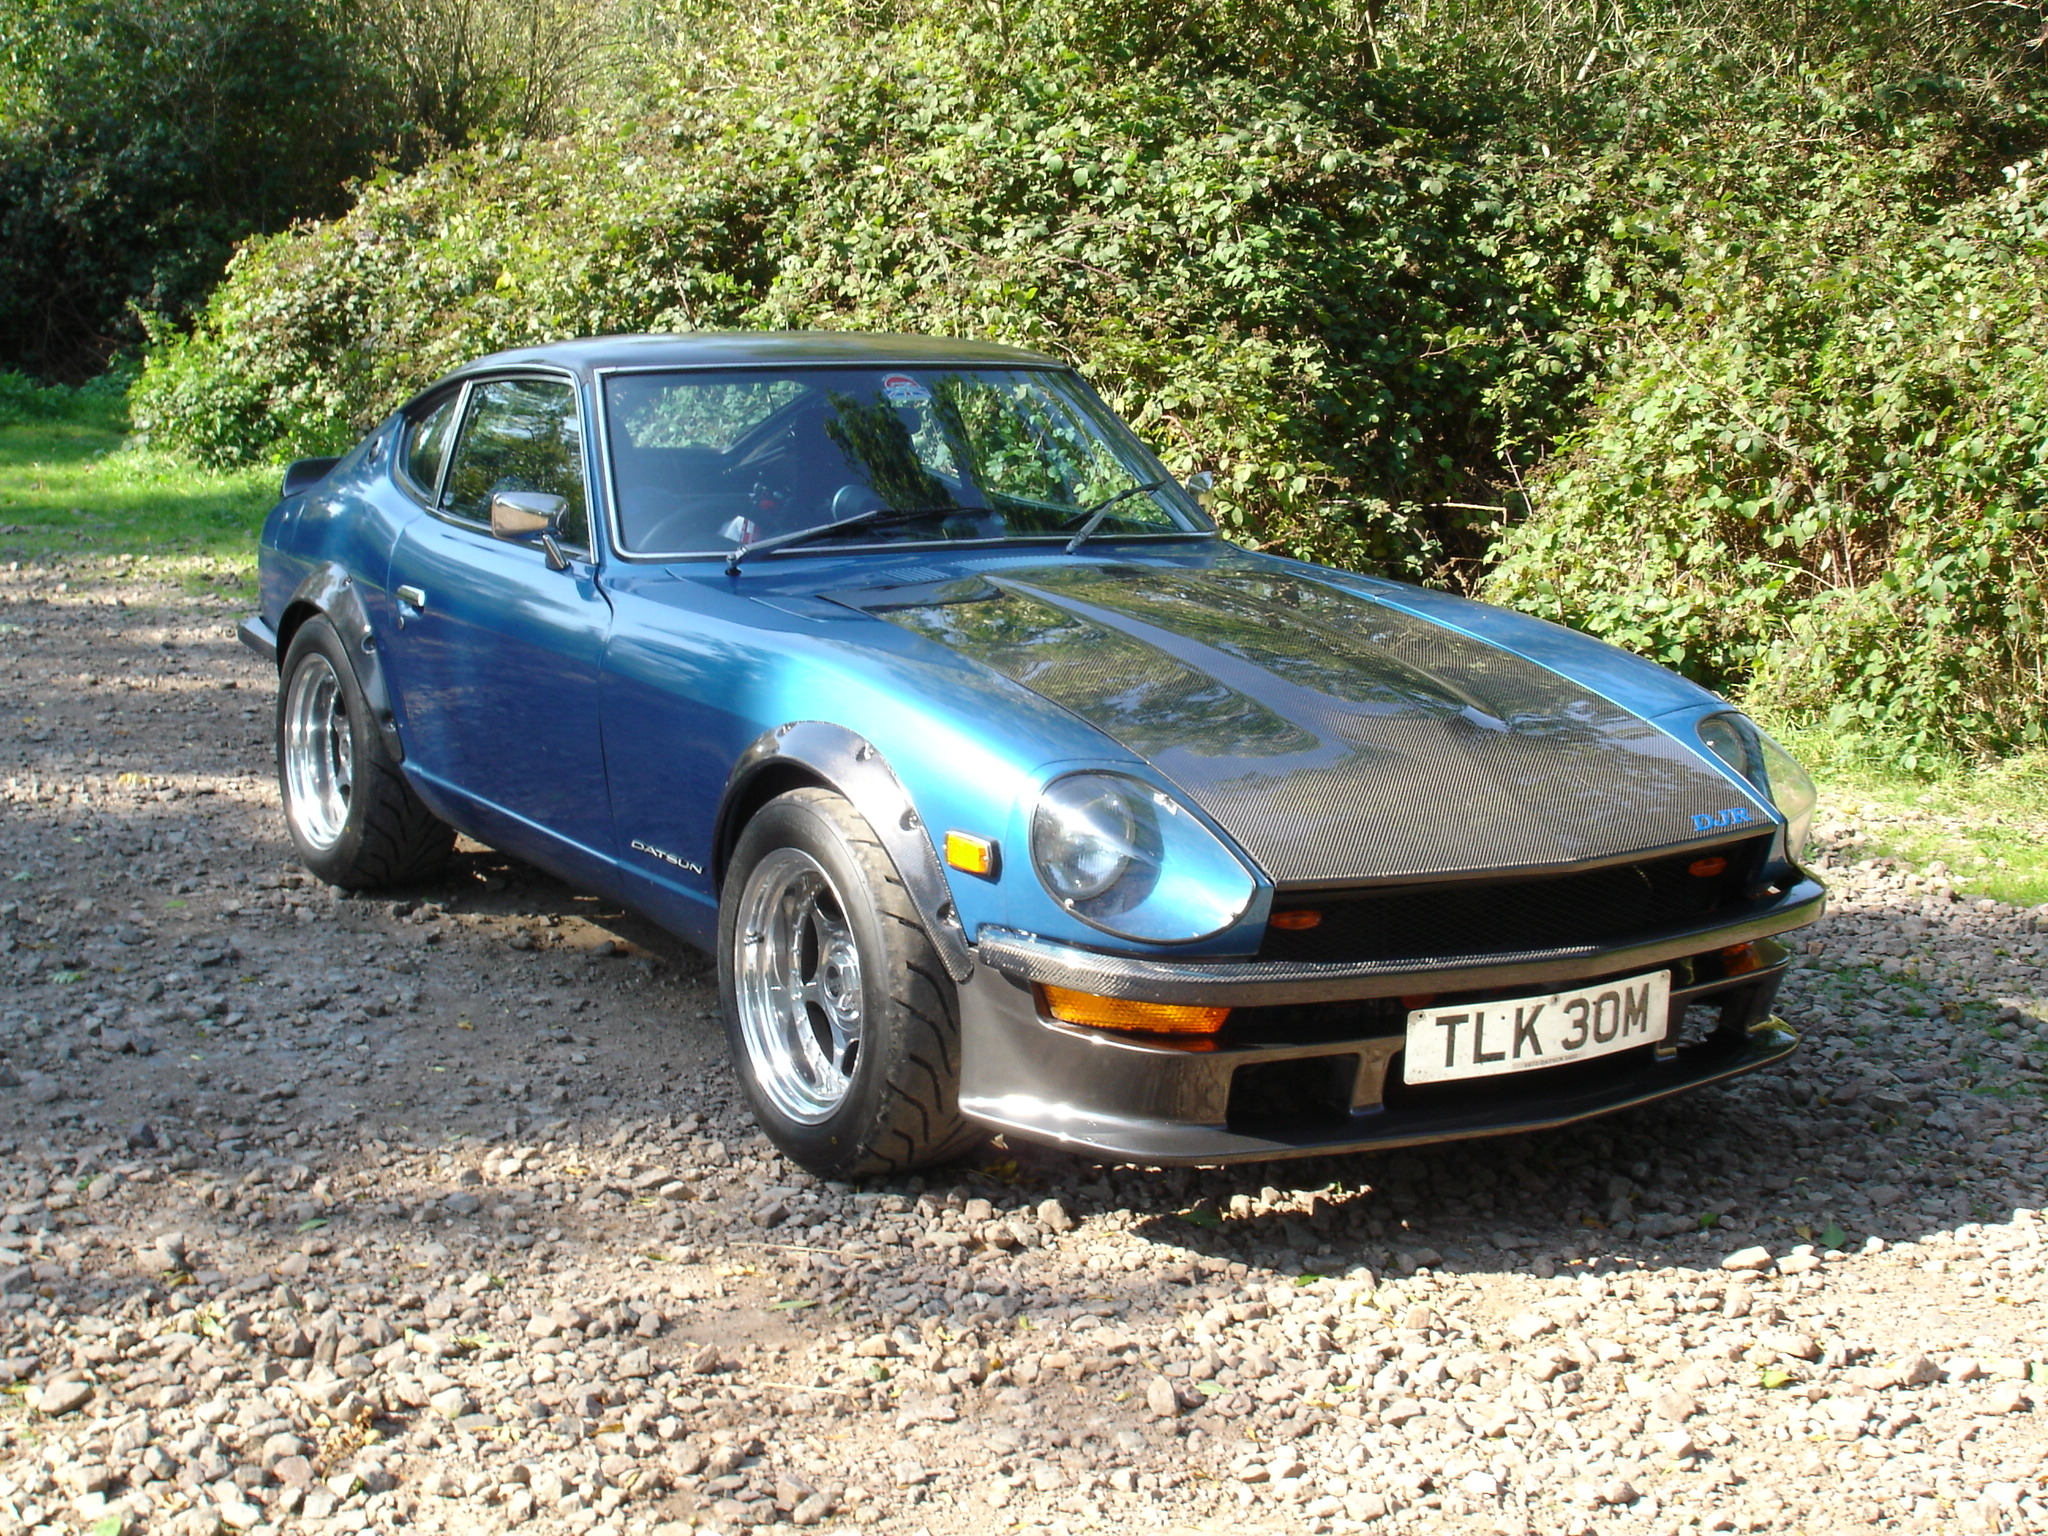 1973 Datsun 240z (L6 normally aspirated)